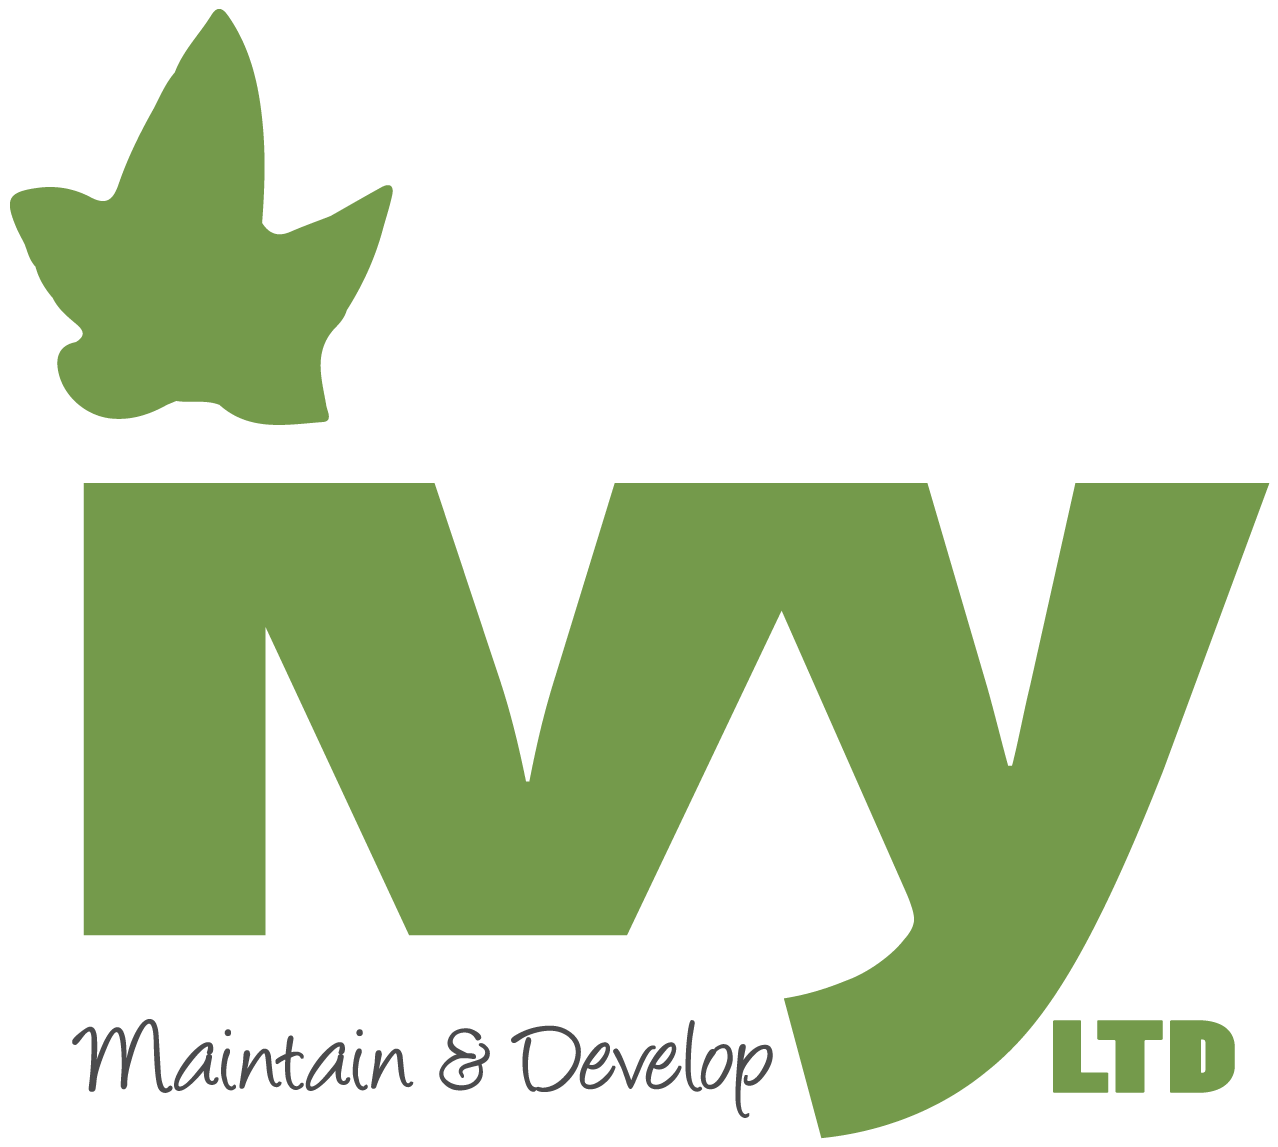 Ivy Maintain